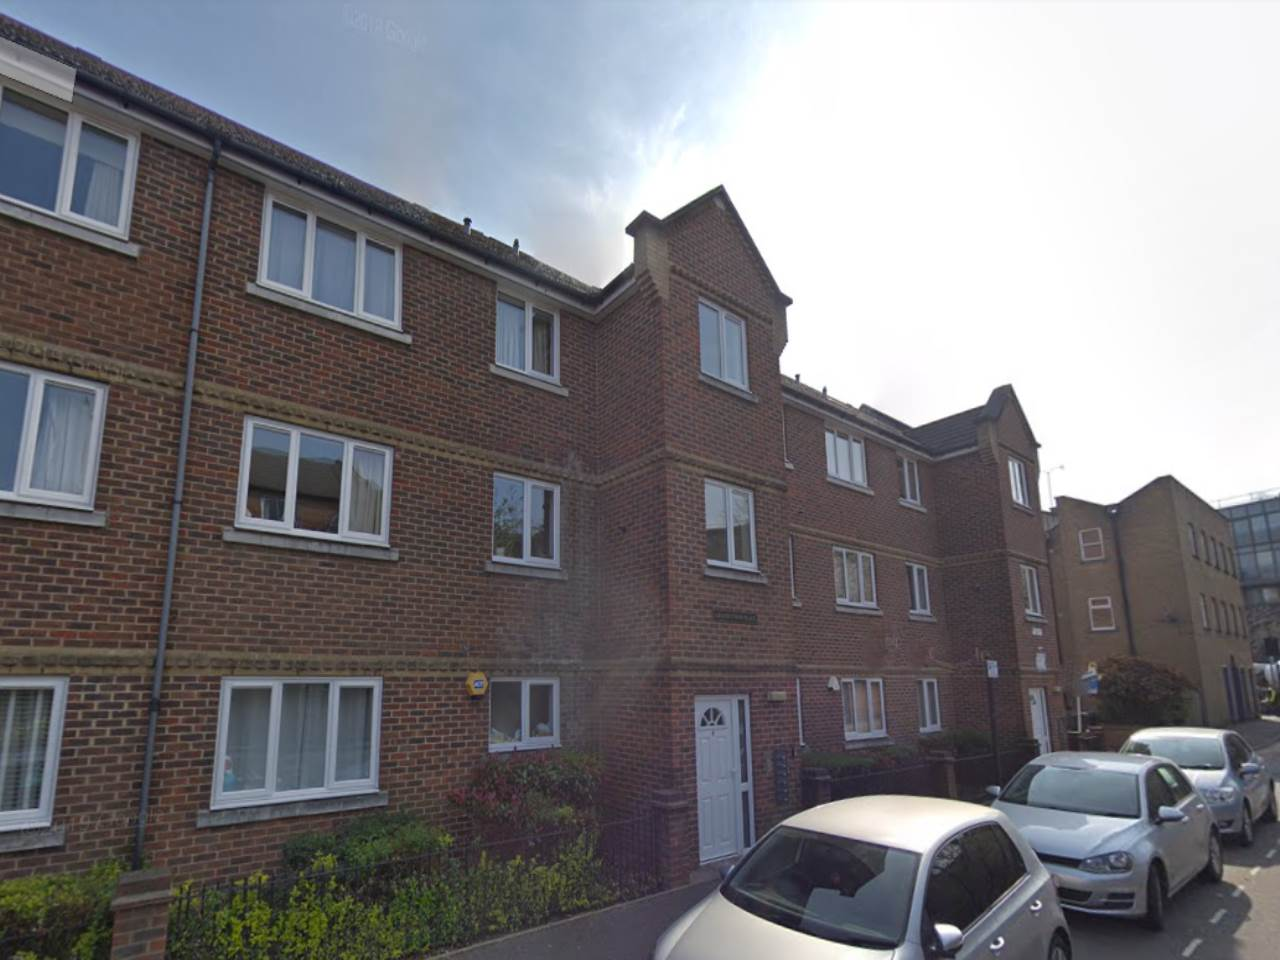 2 bed flat to rent in Hackney, E9